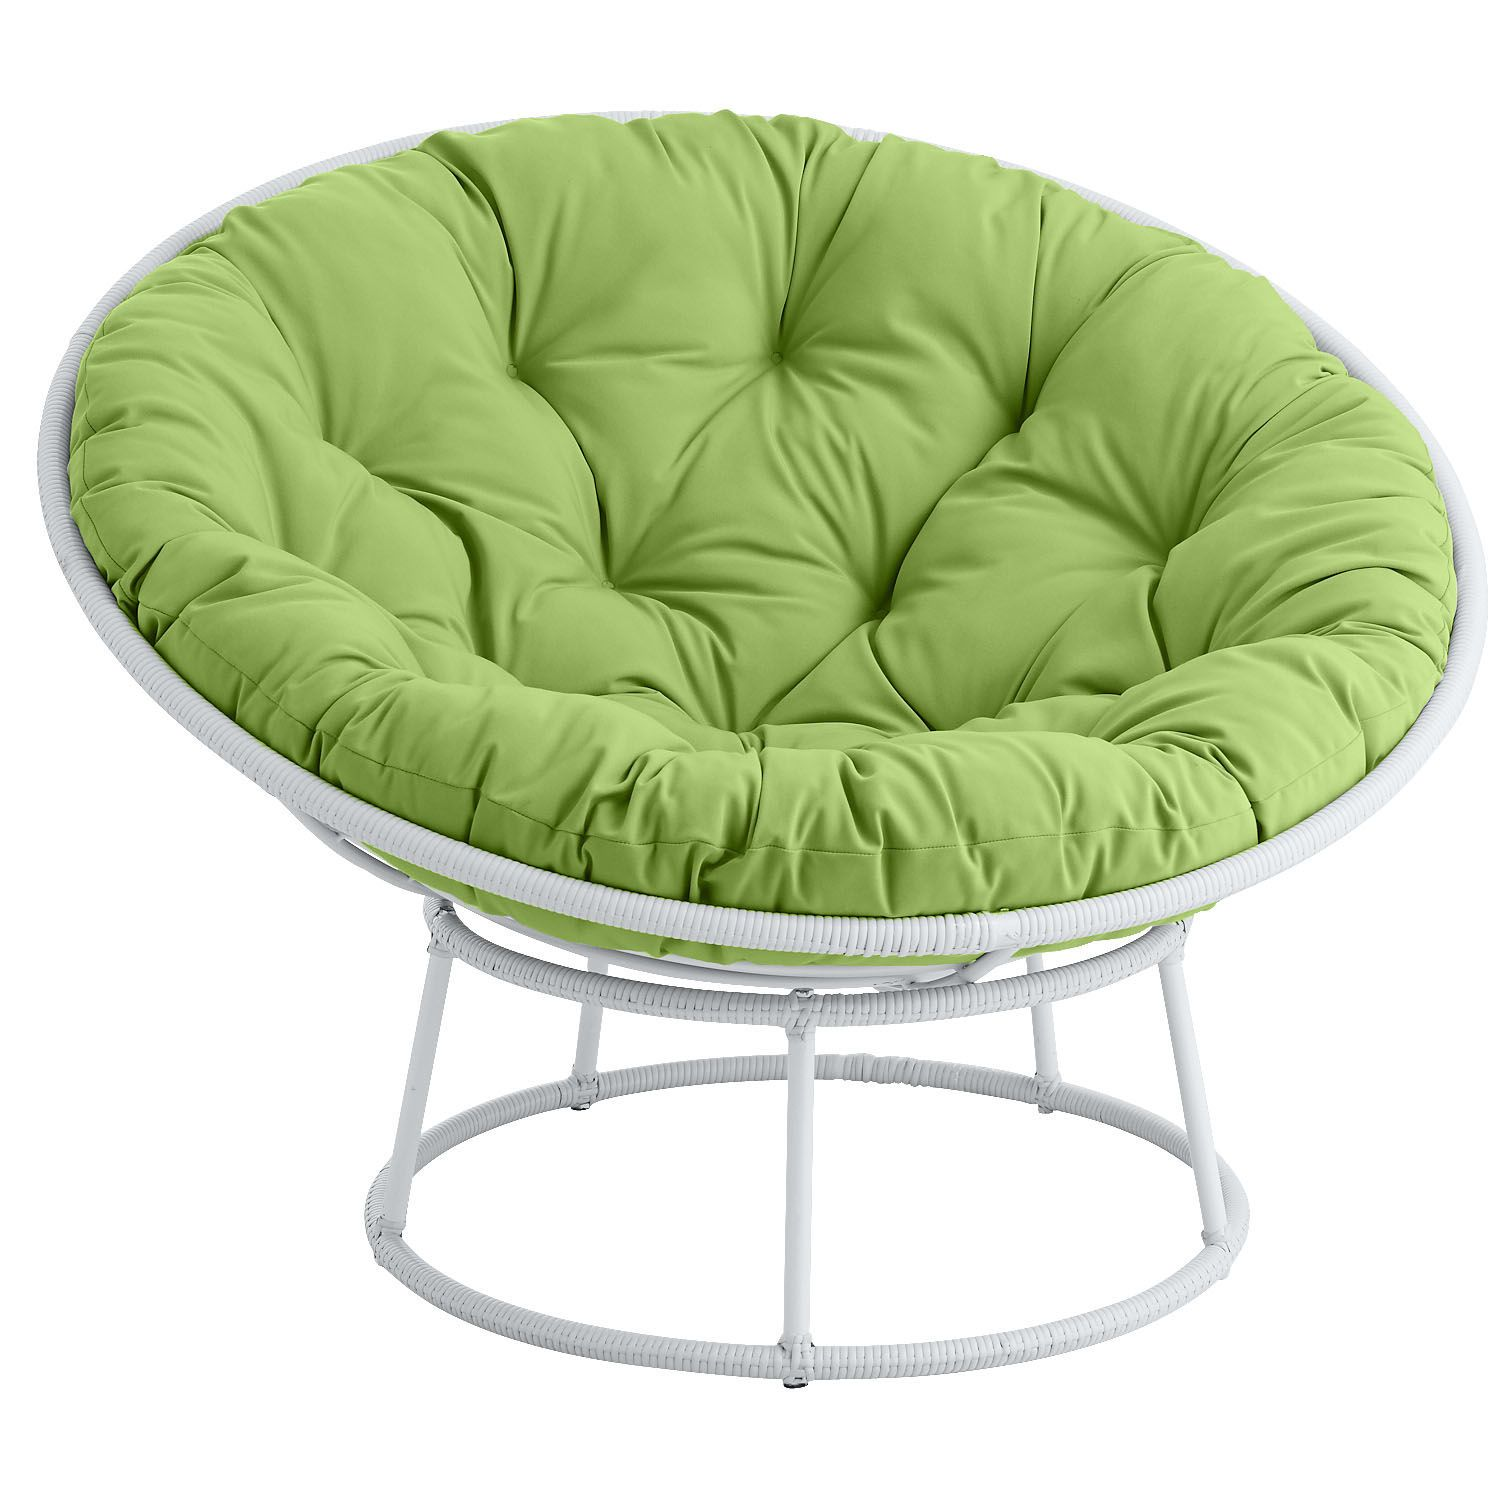 Outdoor Papasan Chair Outdoor White Papasan Chair Yard Ideas Papasan Chair